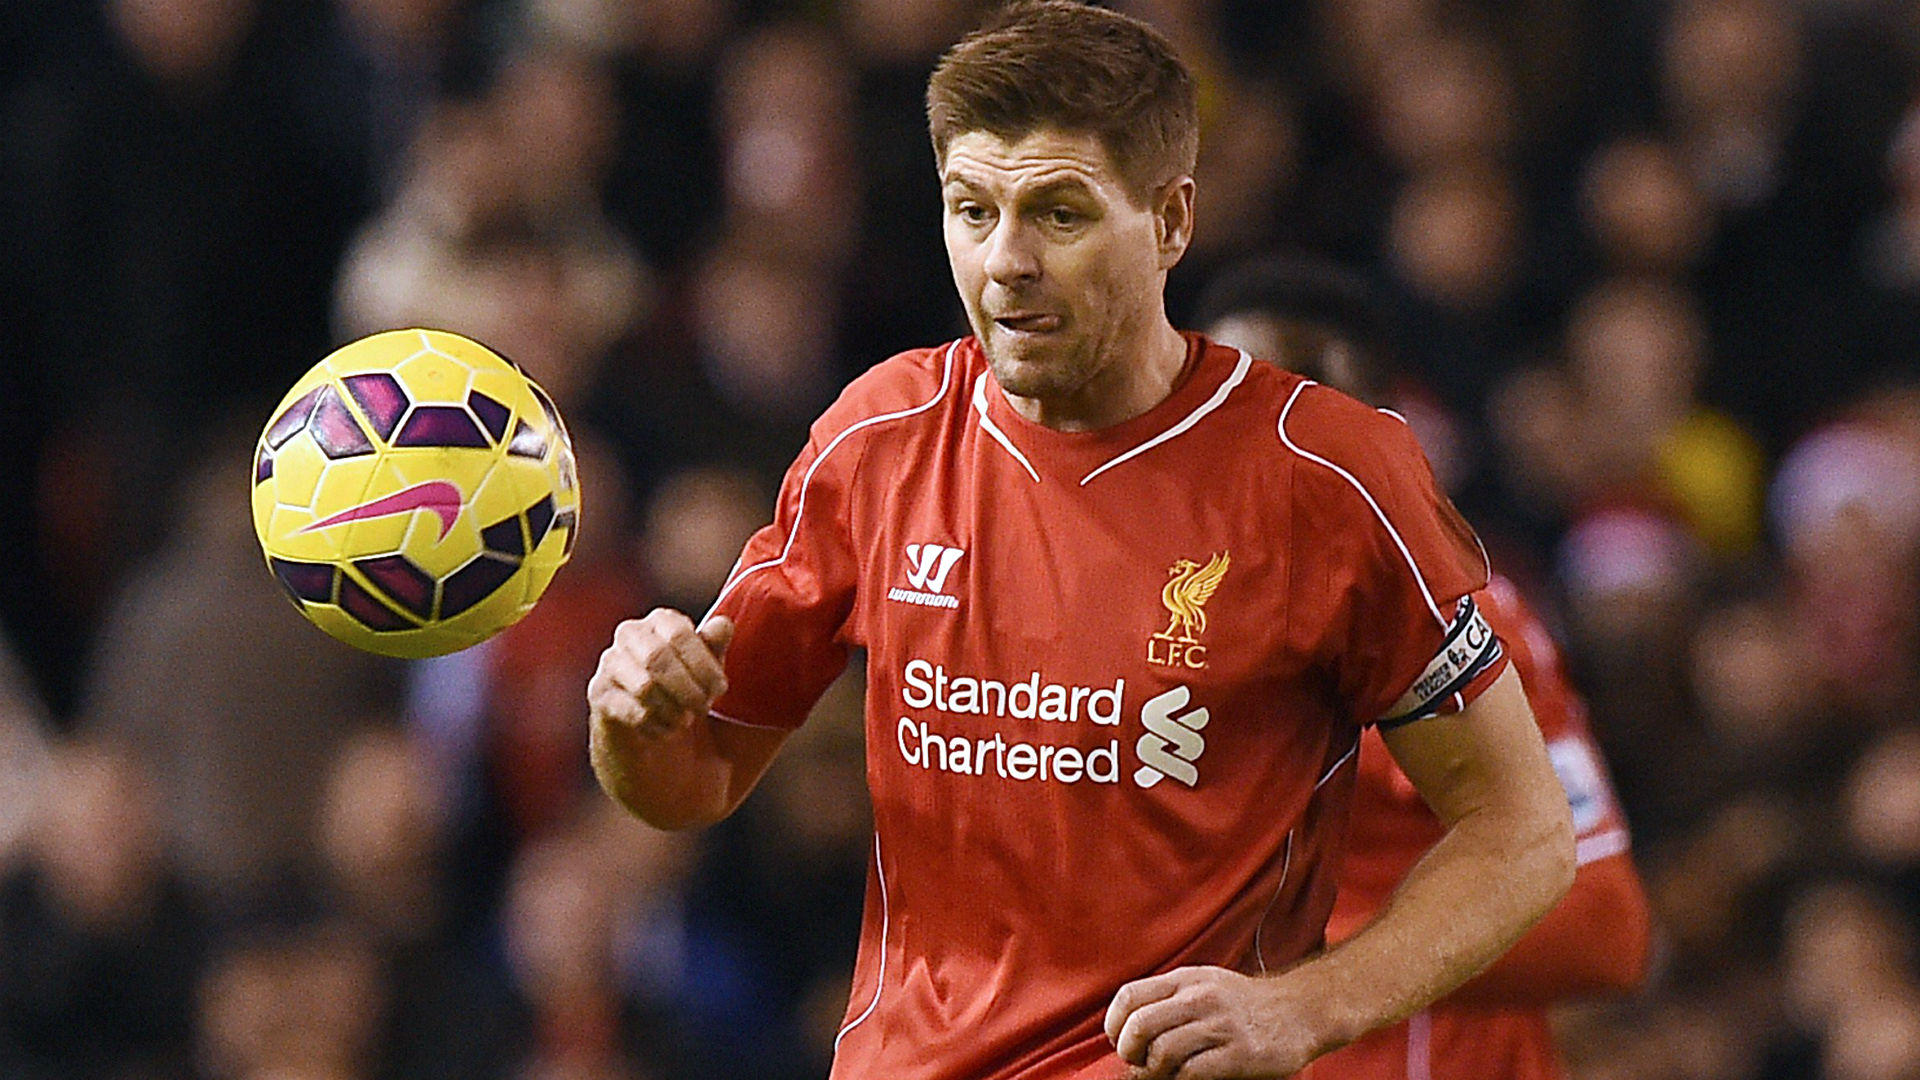 Crystal Palace vs. Liverpool betting lines and pick - Goals aplenty at Selhurst Park?